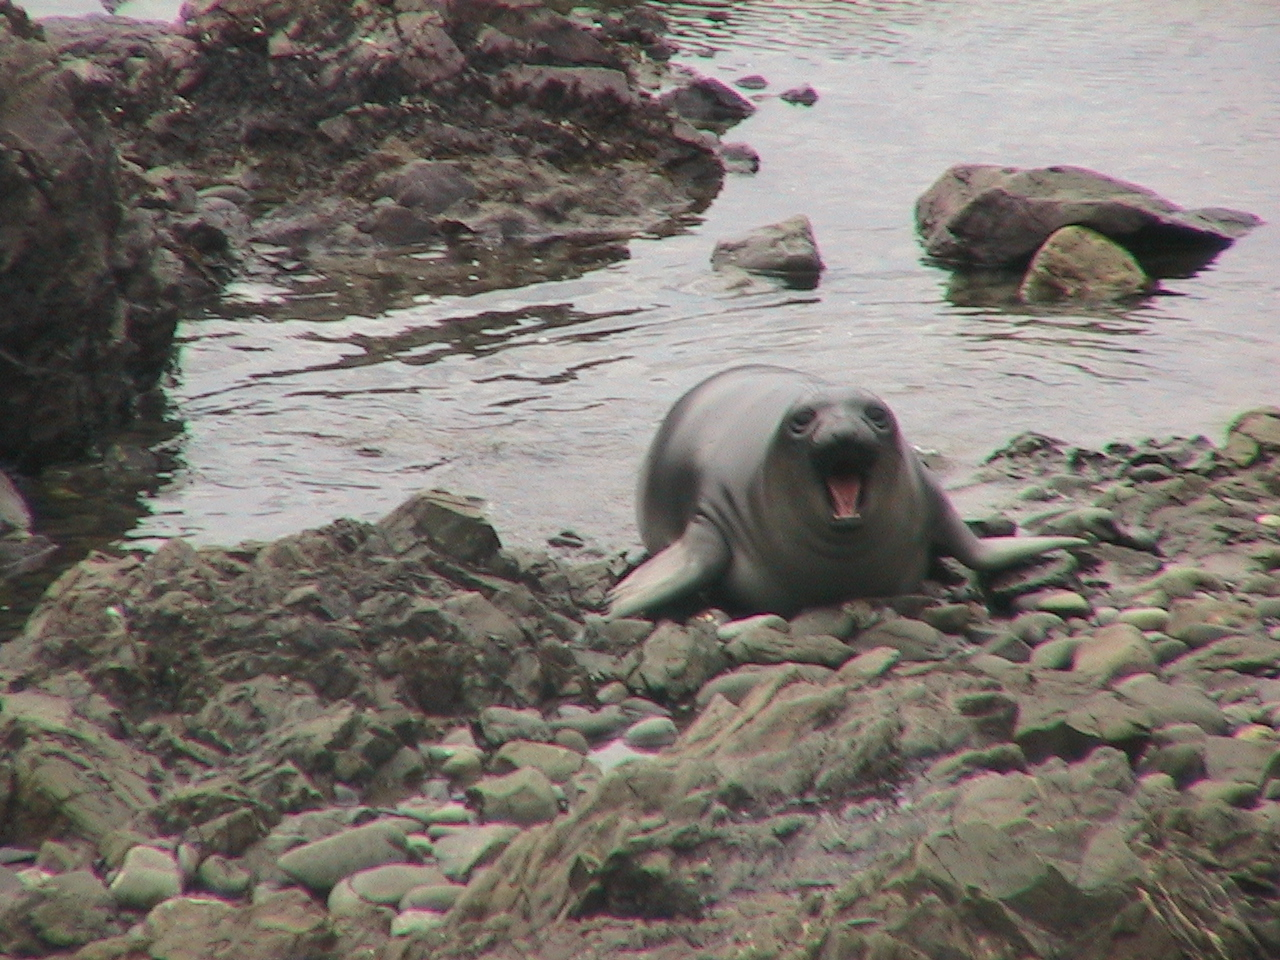 Go up to Big Sur this weekend and see The Elephant Seals